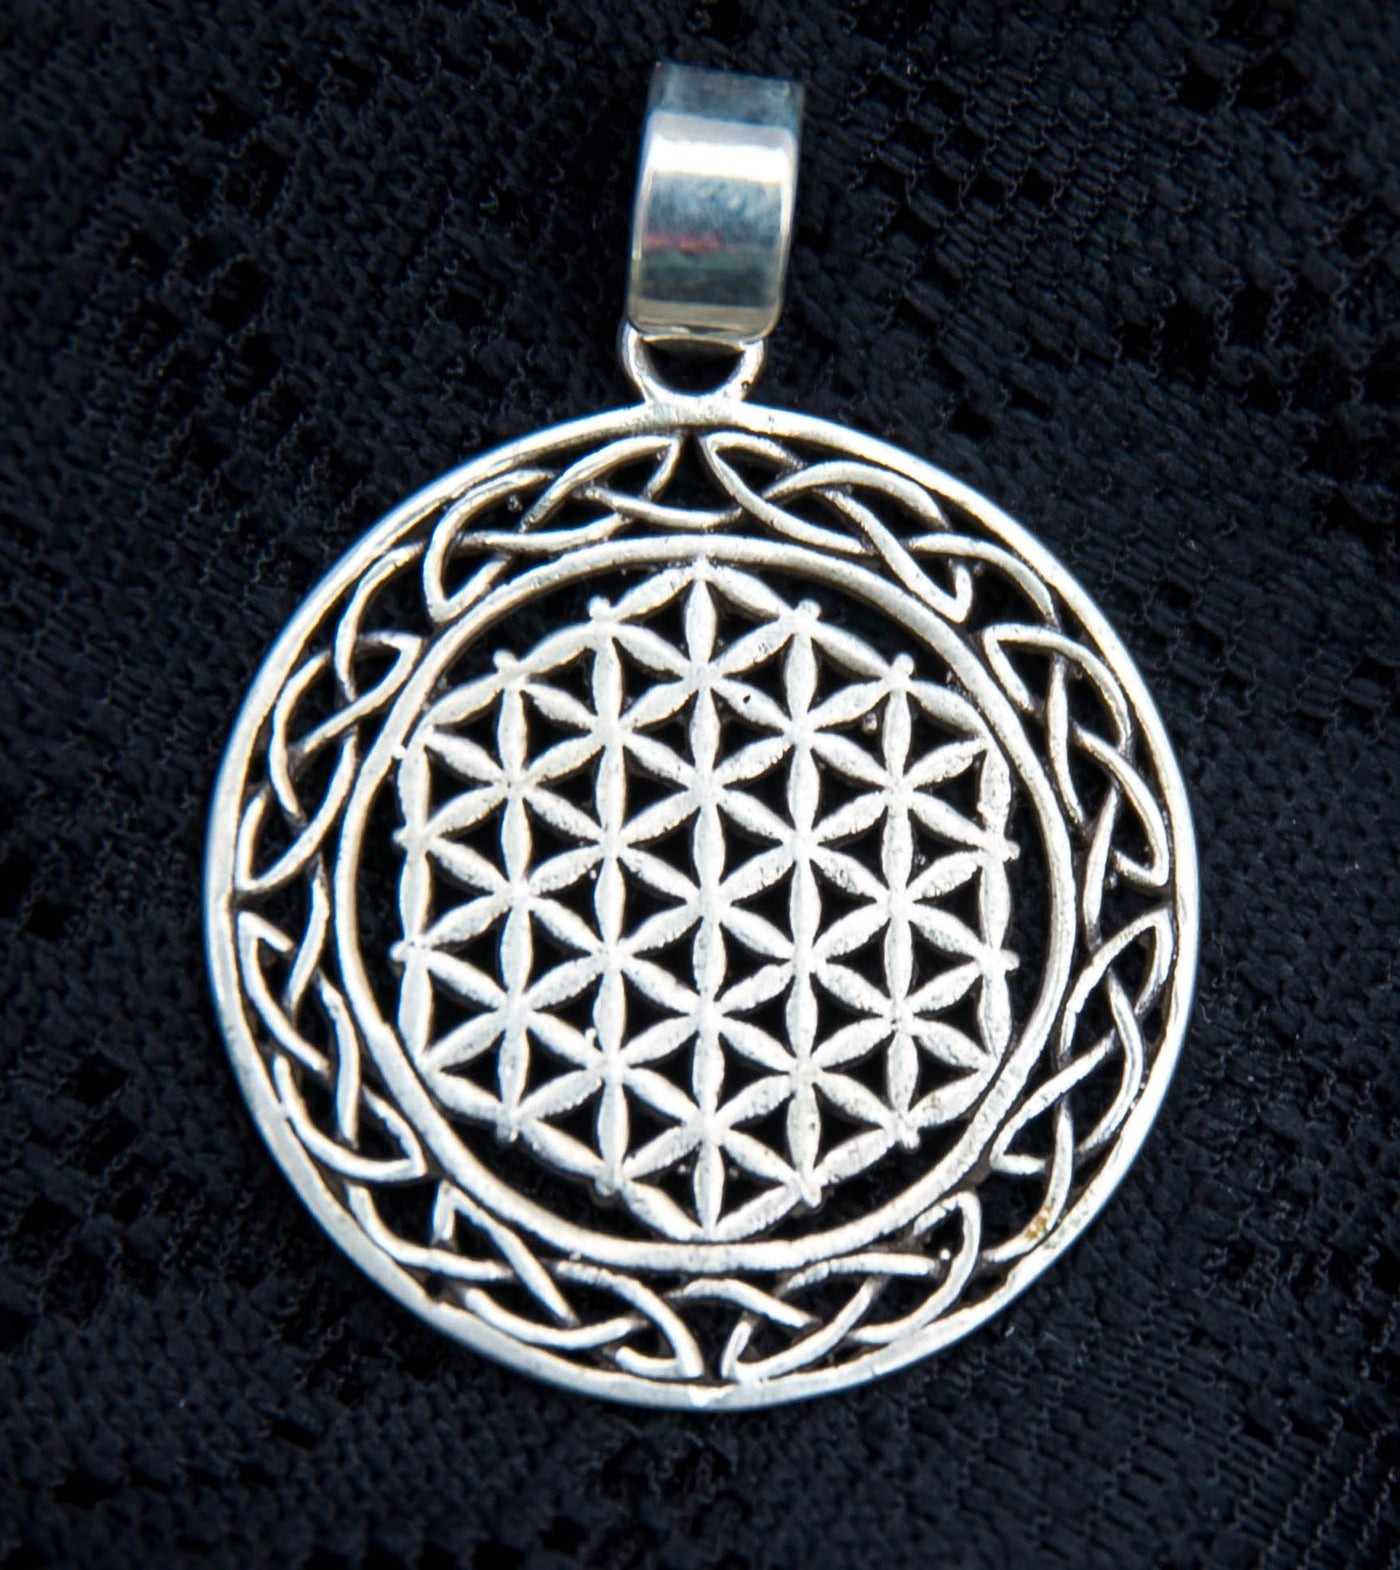 Celtic flower of life pendant spiritual gifts for him and her celtic flower of life pendant silver ekeko crafts aloadofball Image collections